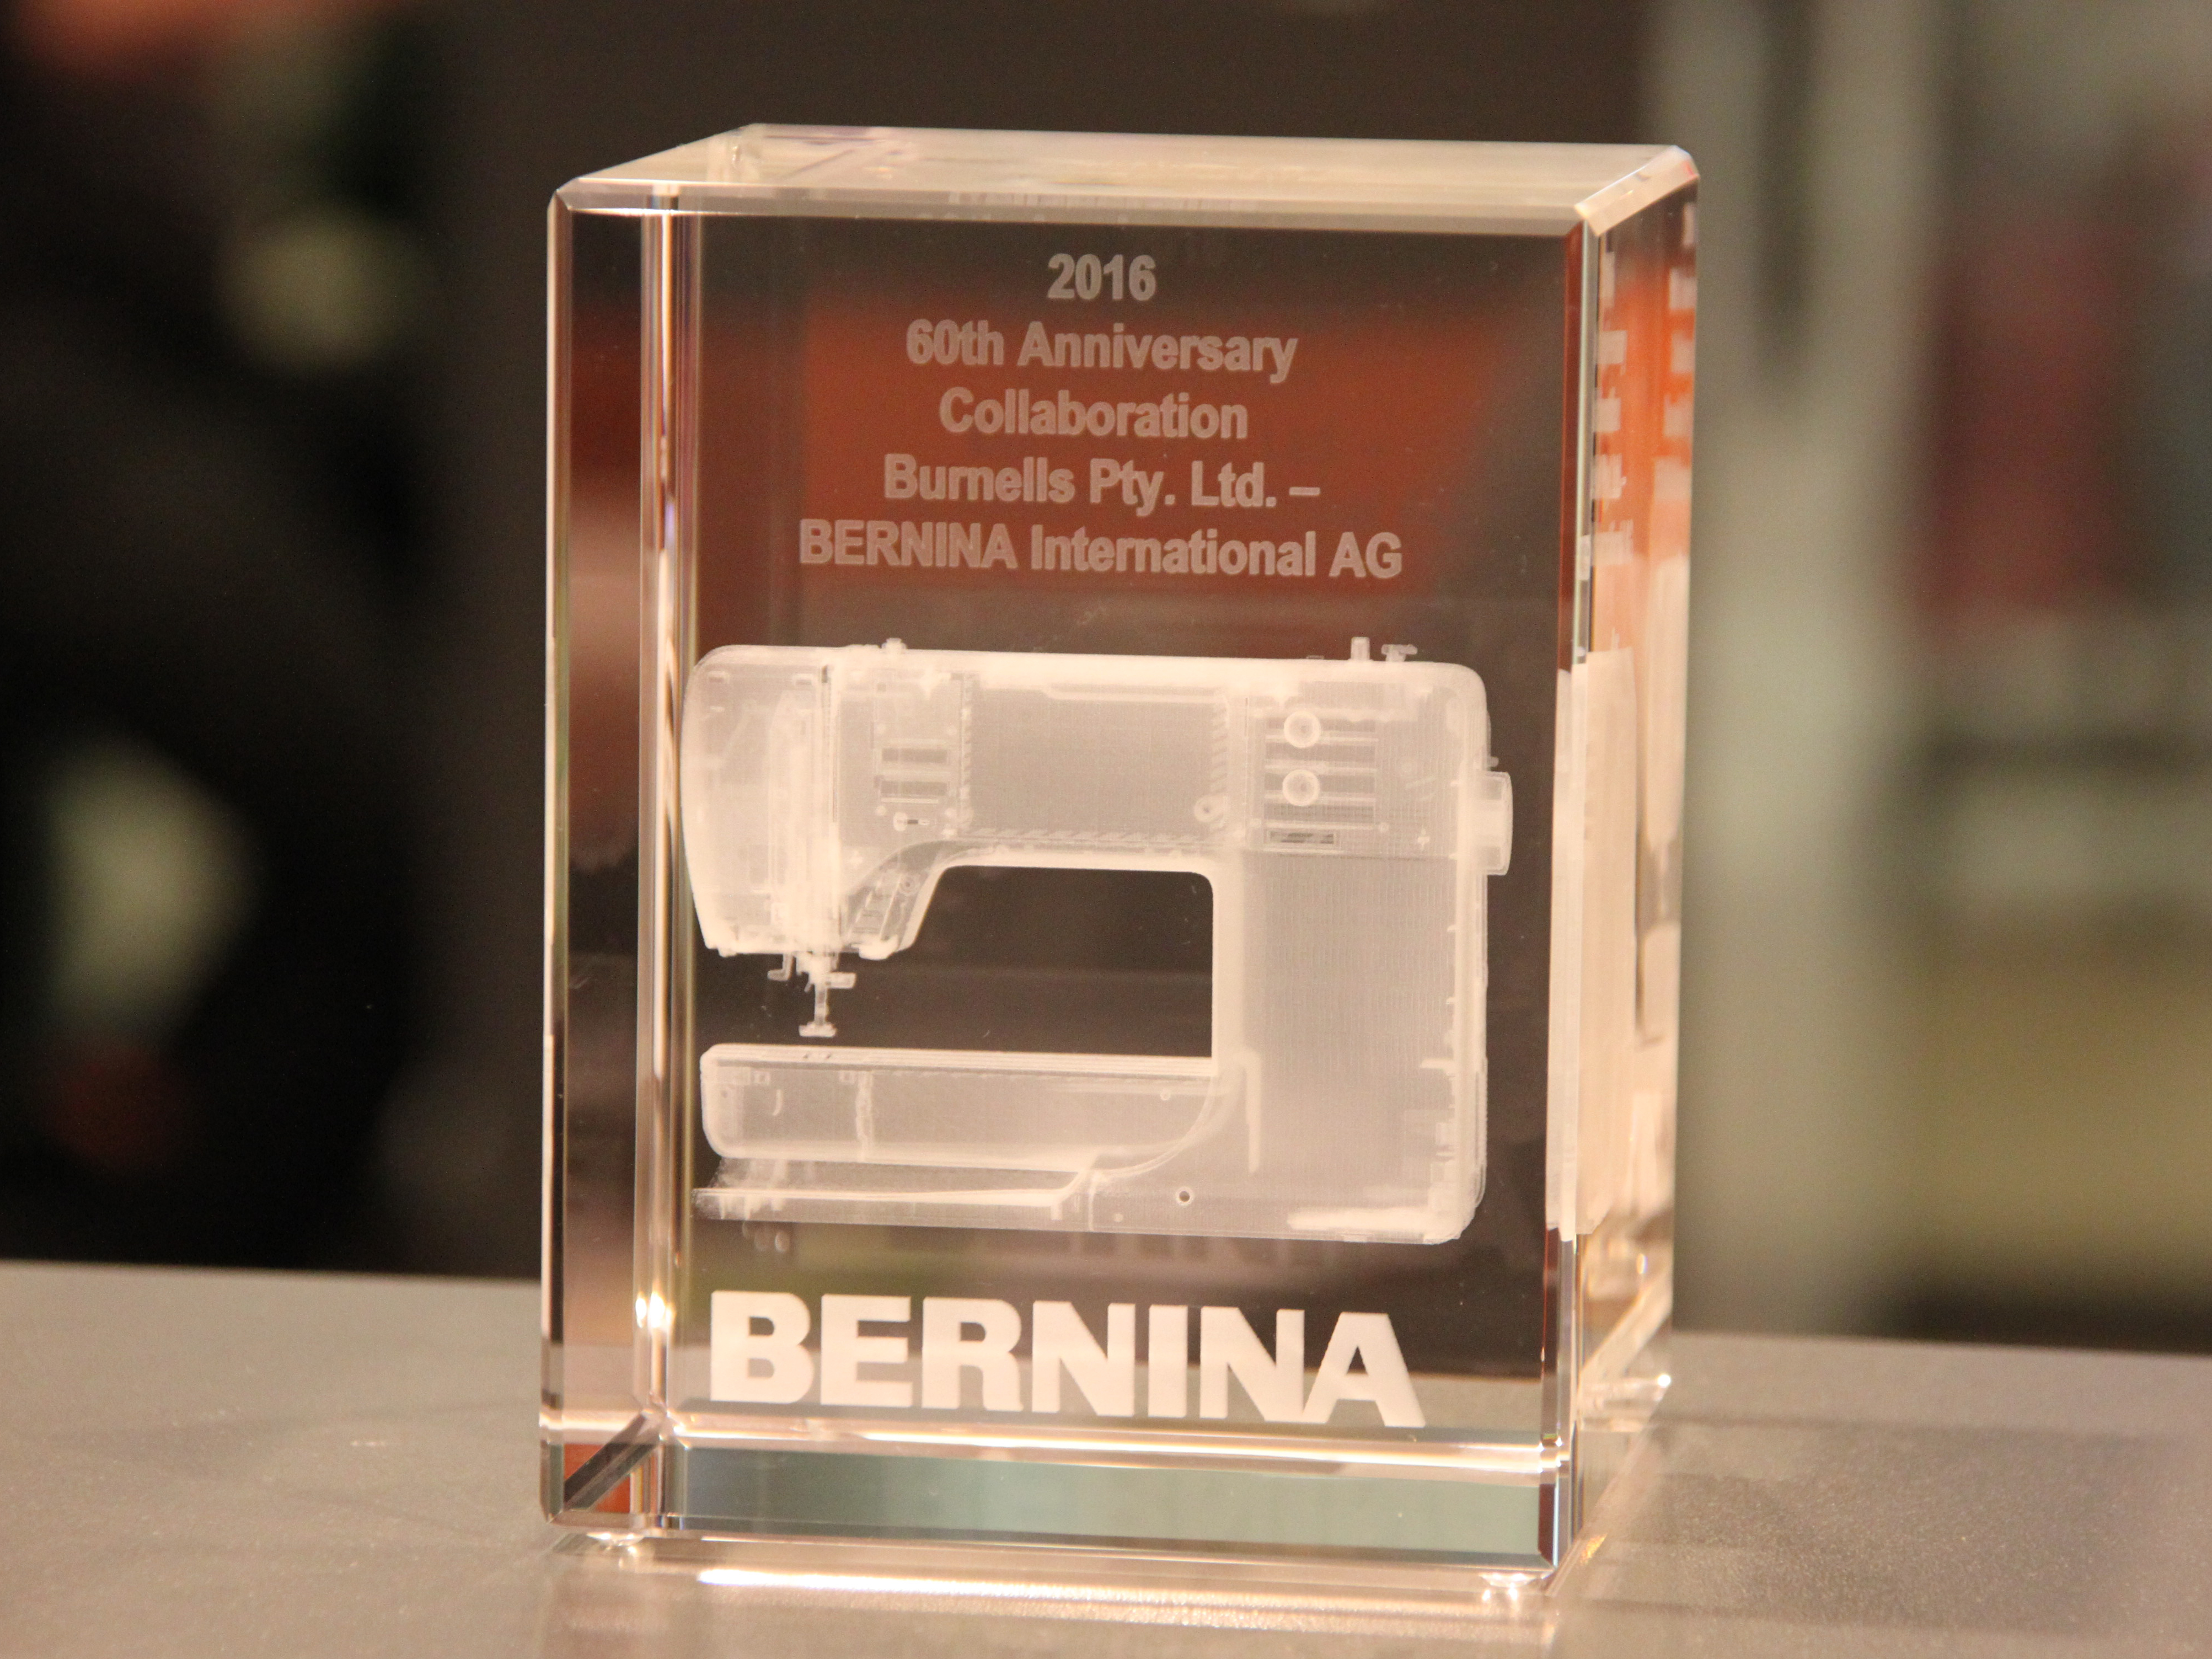 Bermina Nähmaschinen International Ag 3D Gravur Laserpix